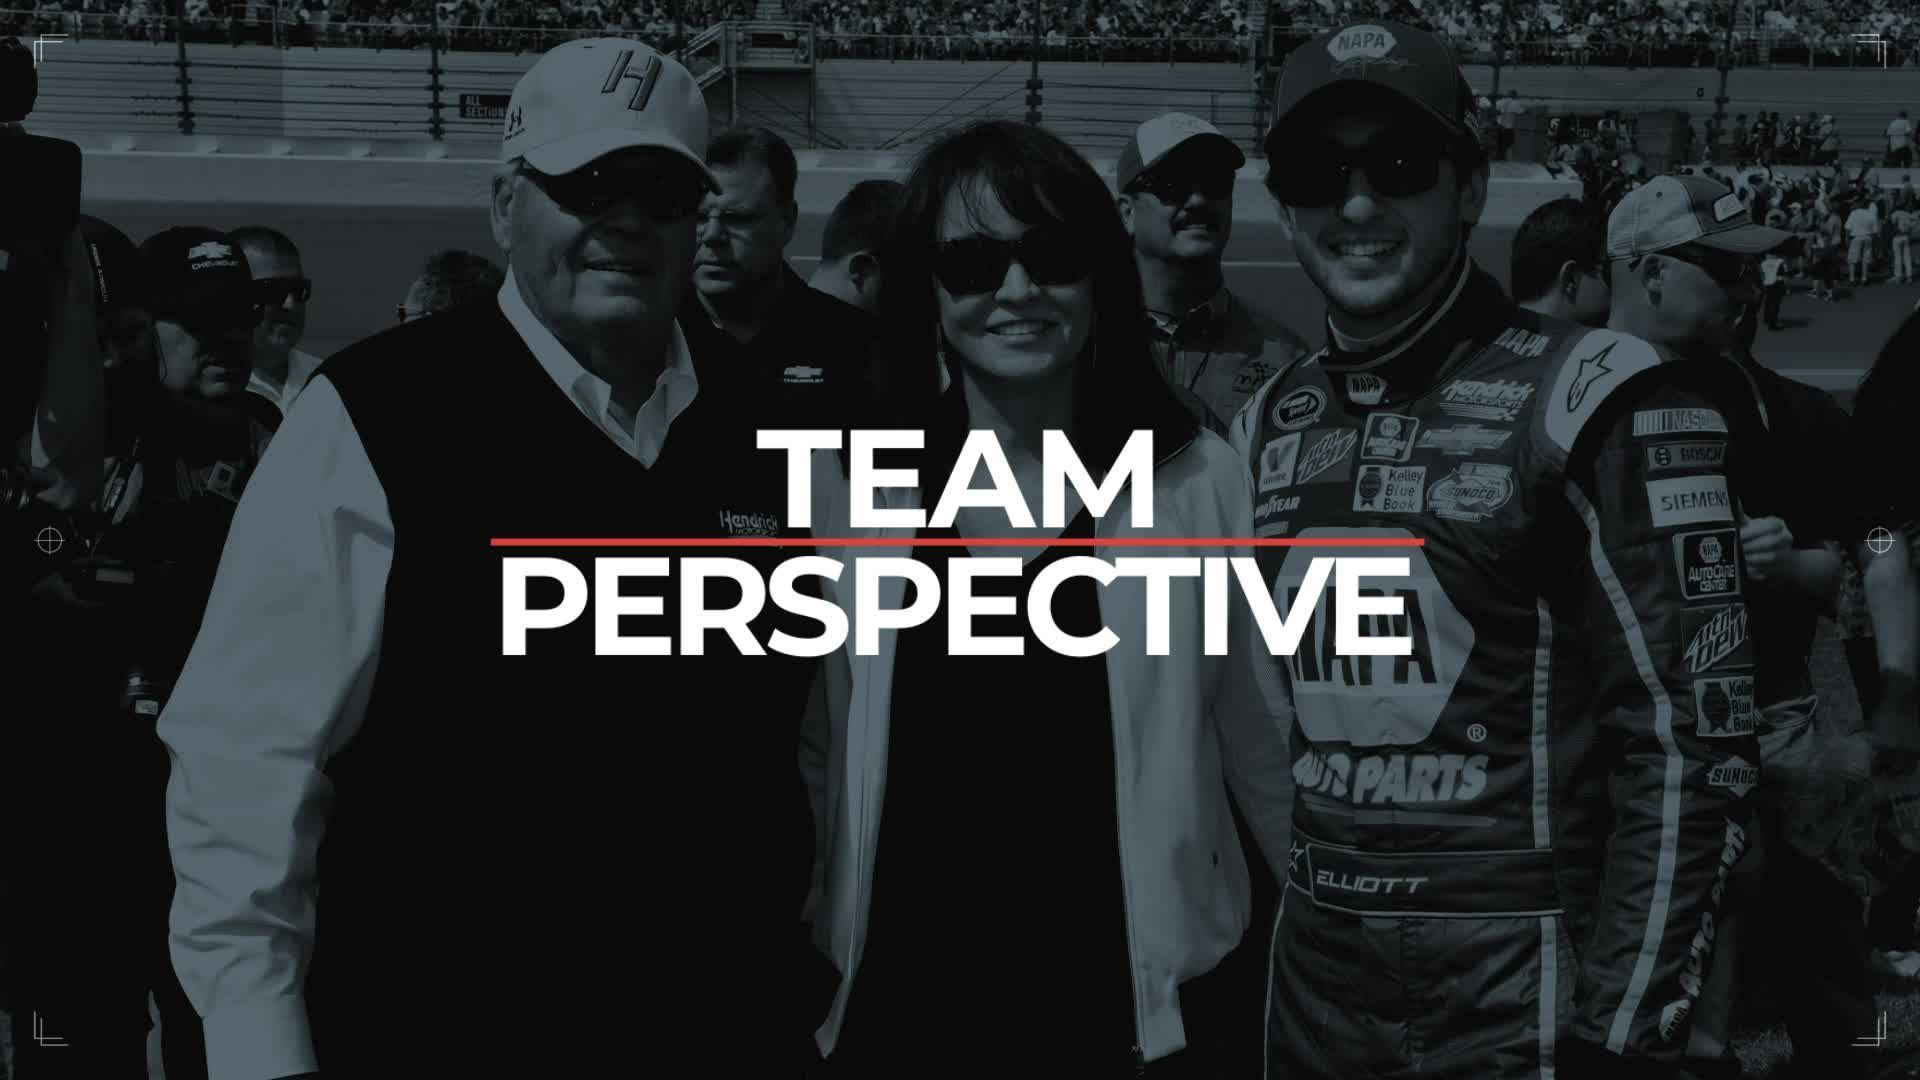 Team Perspective